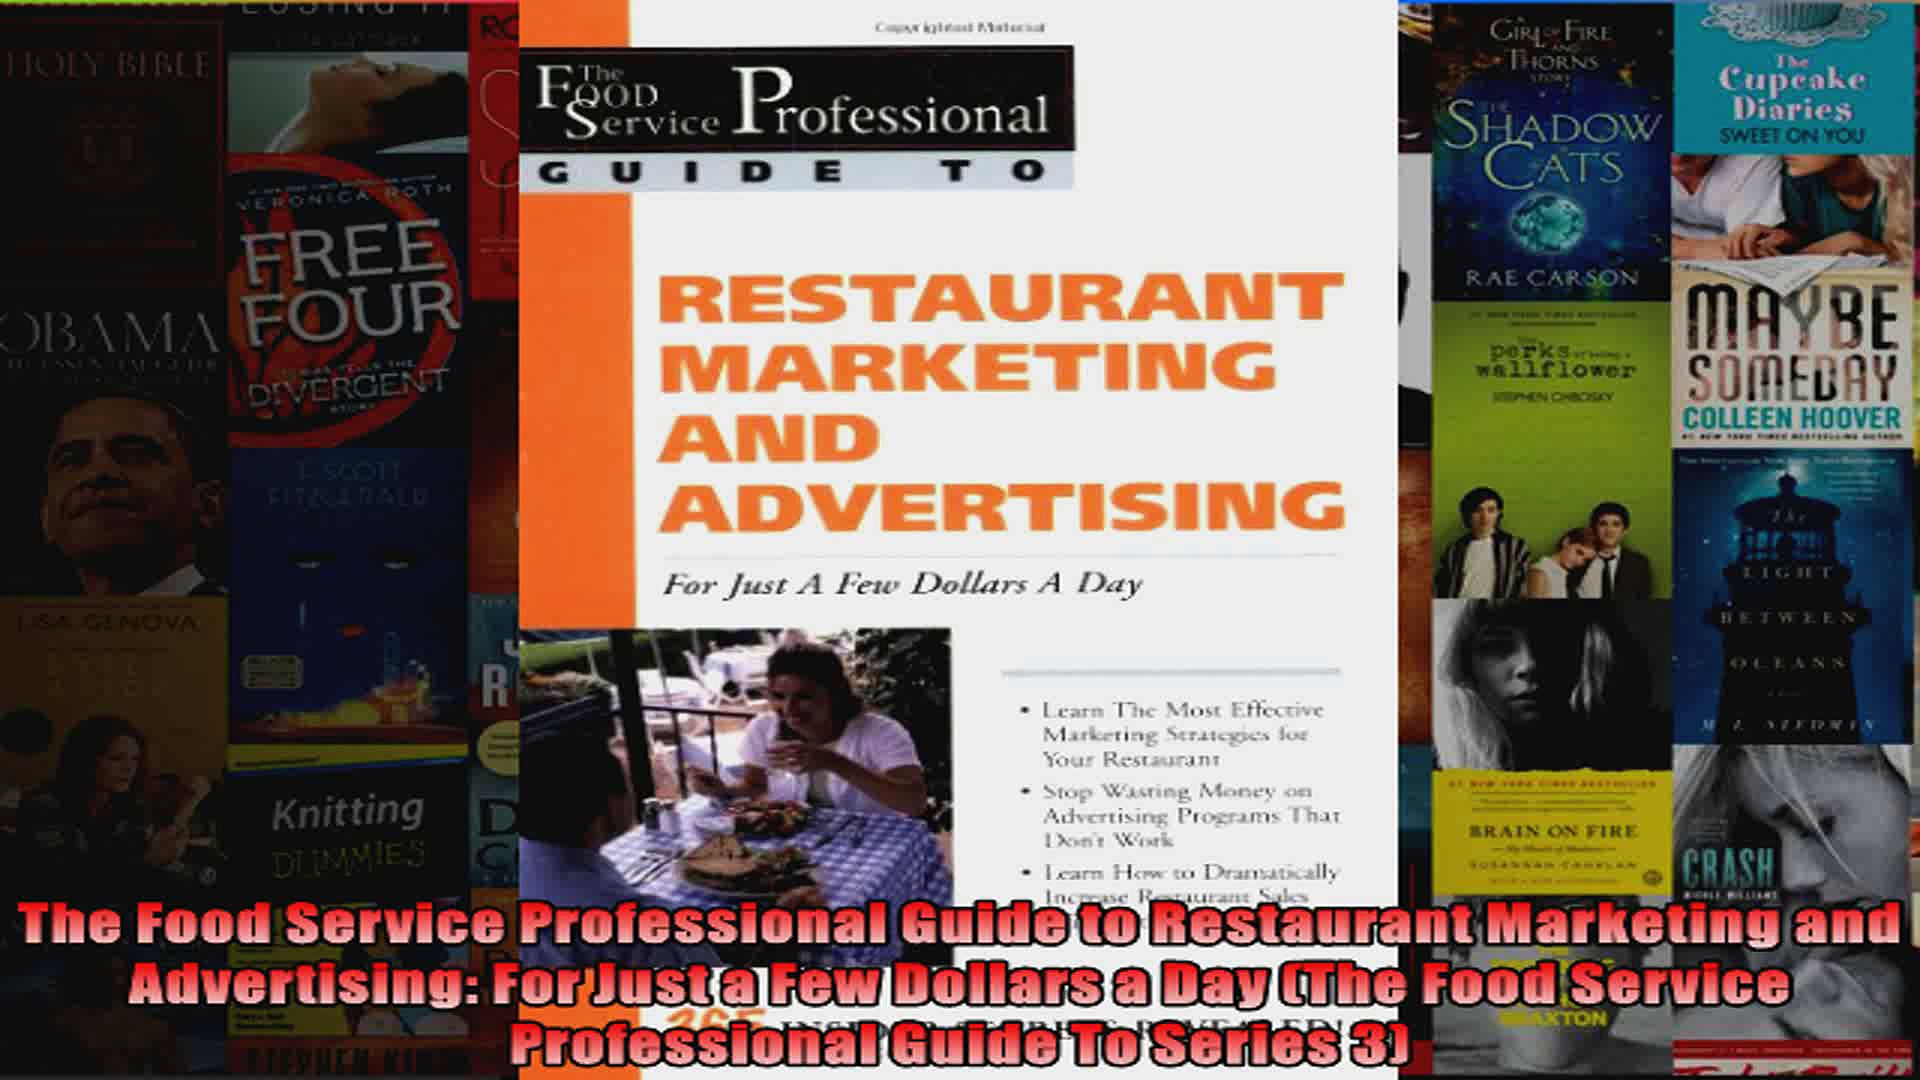 The Food Service Professional Guide to Restaurant Marketing and Advertising For Just a